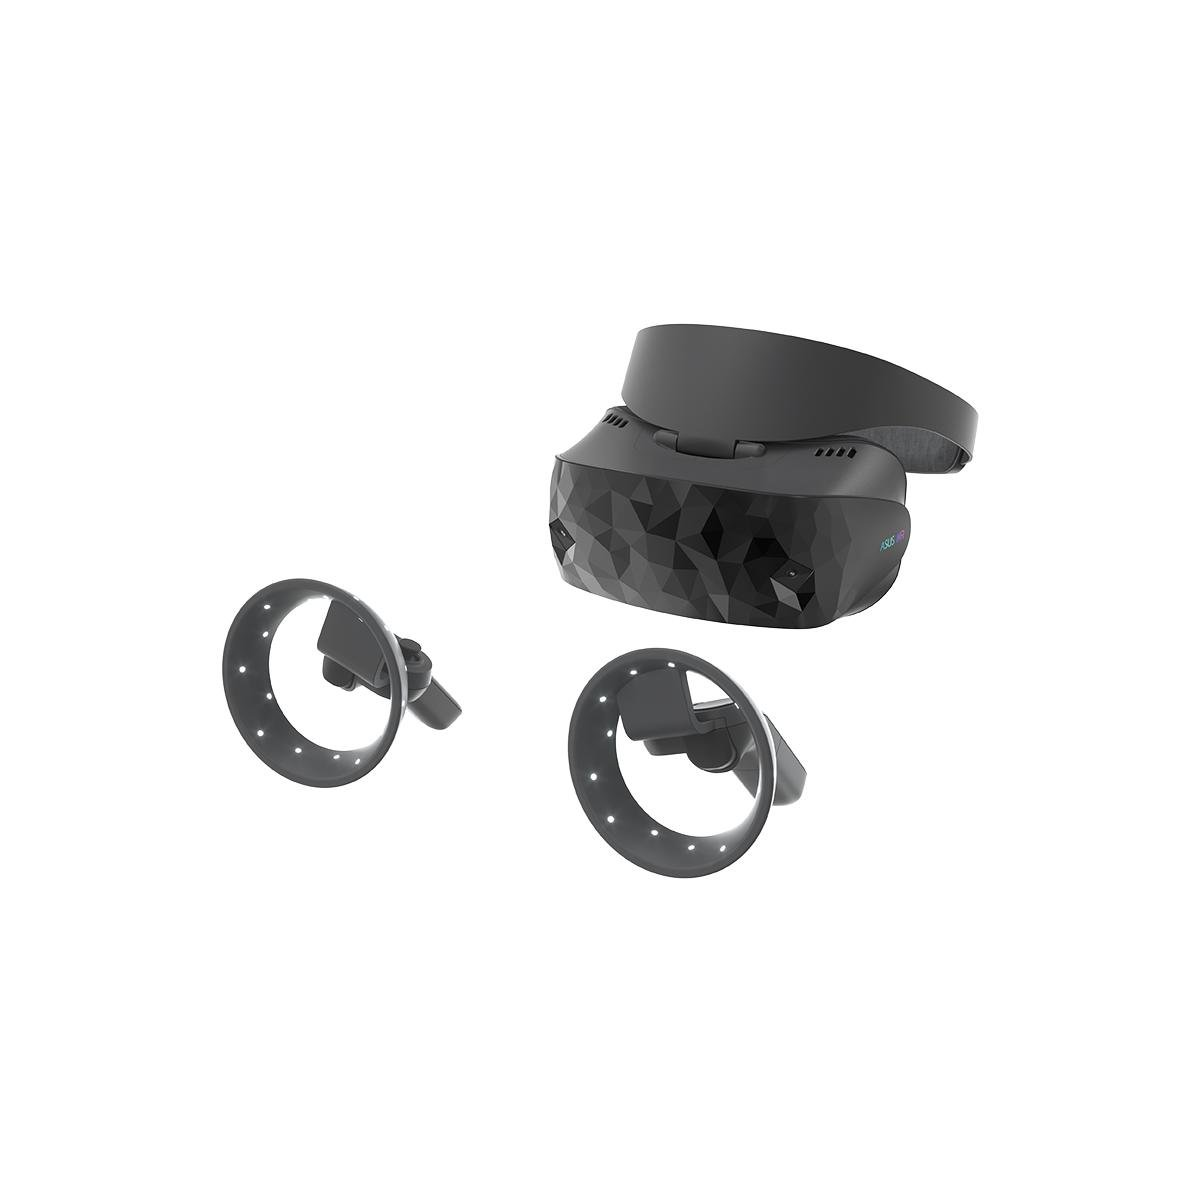 ASUS Windows Mixed Reality Headset with Motion